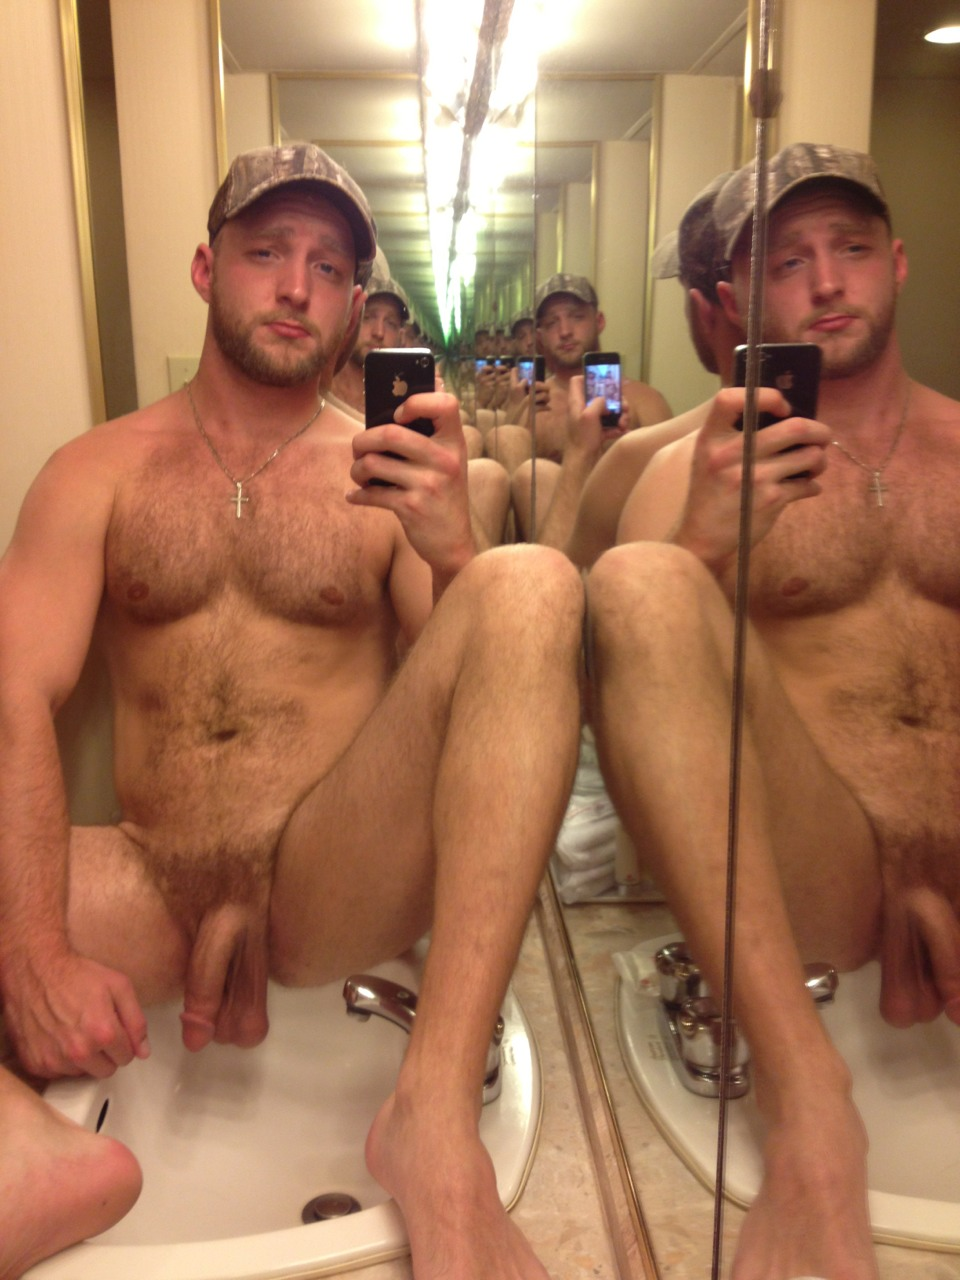 hot naked men pics in mirror